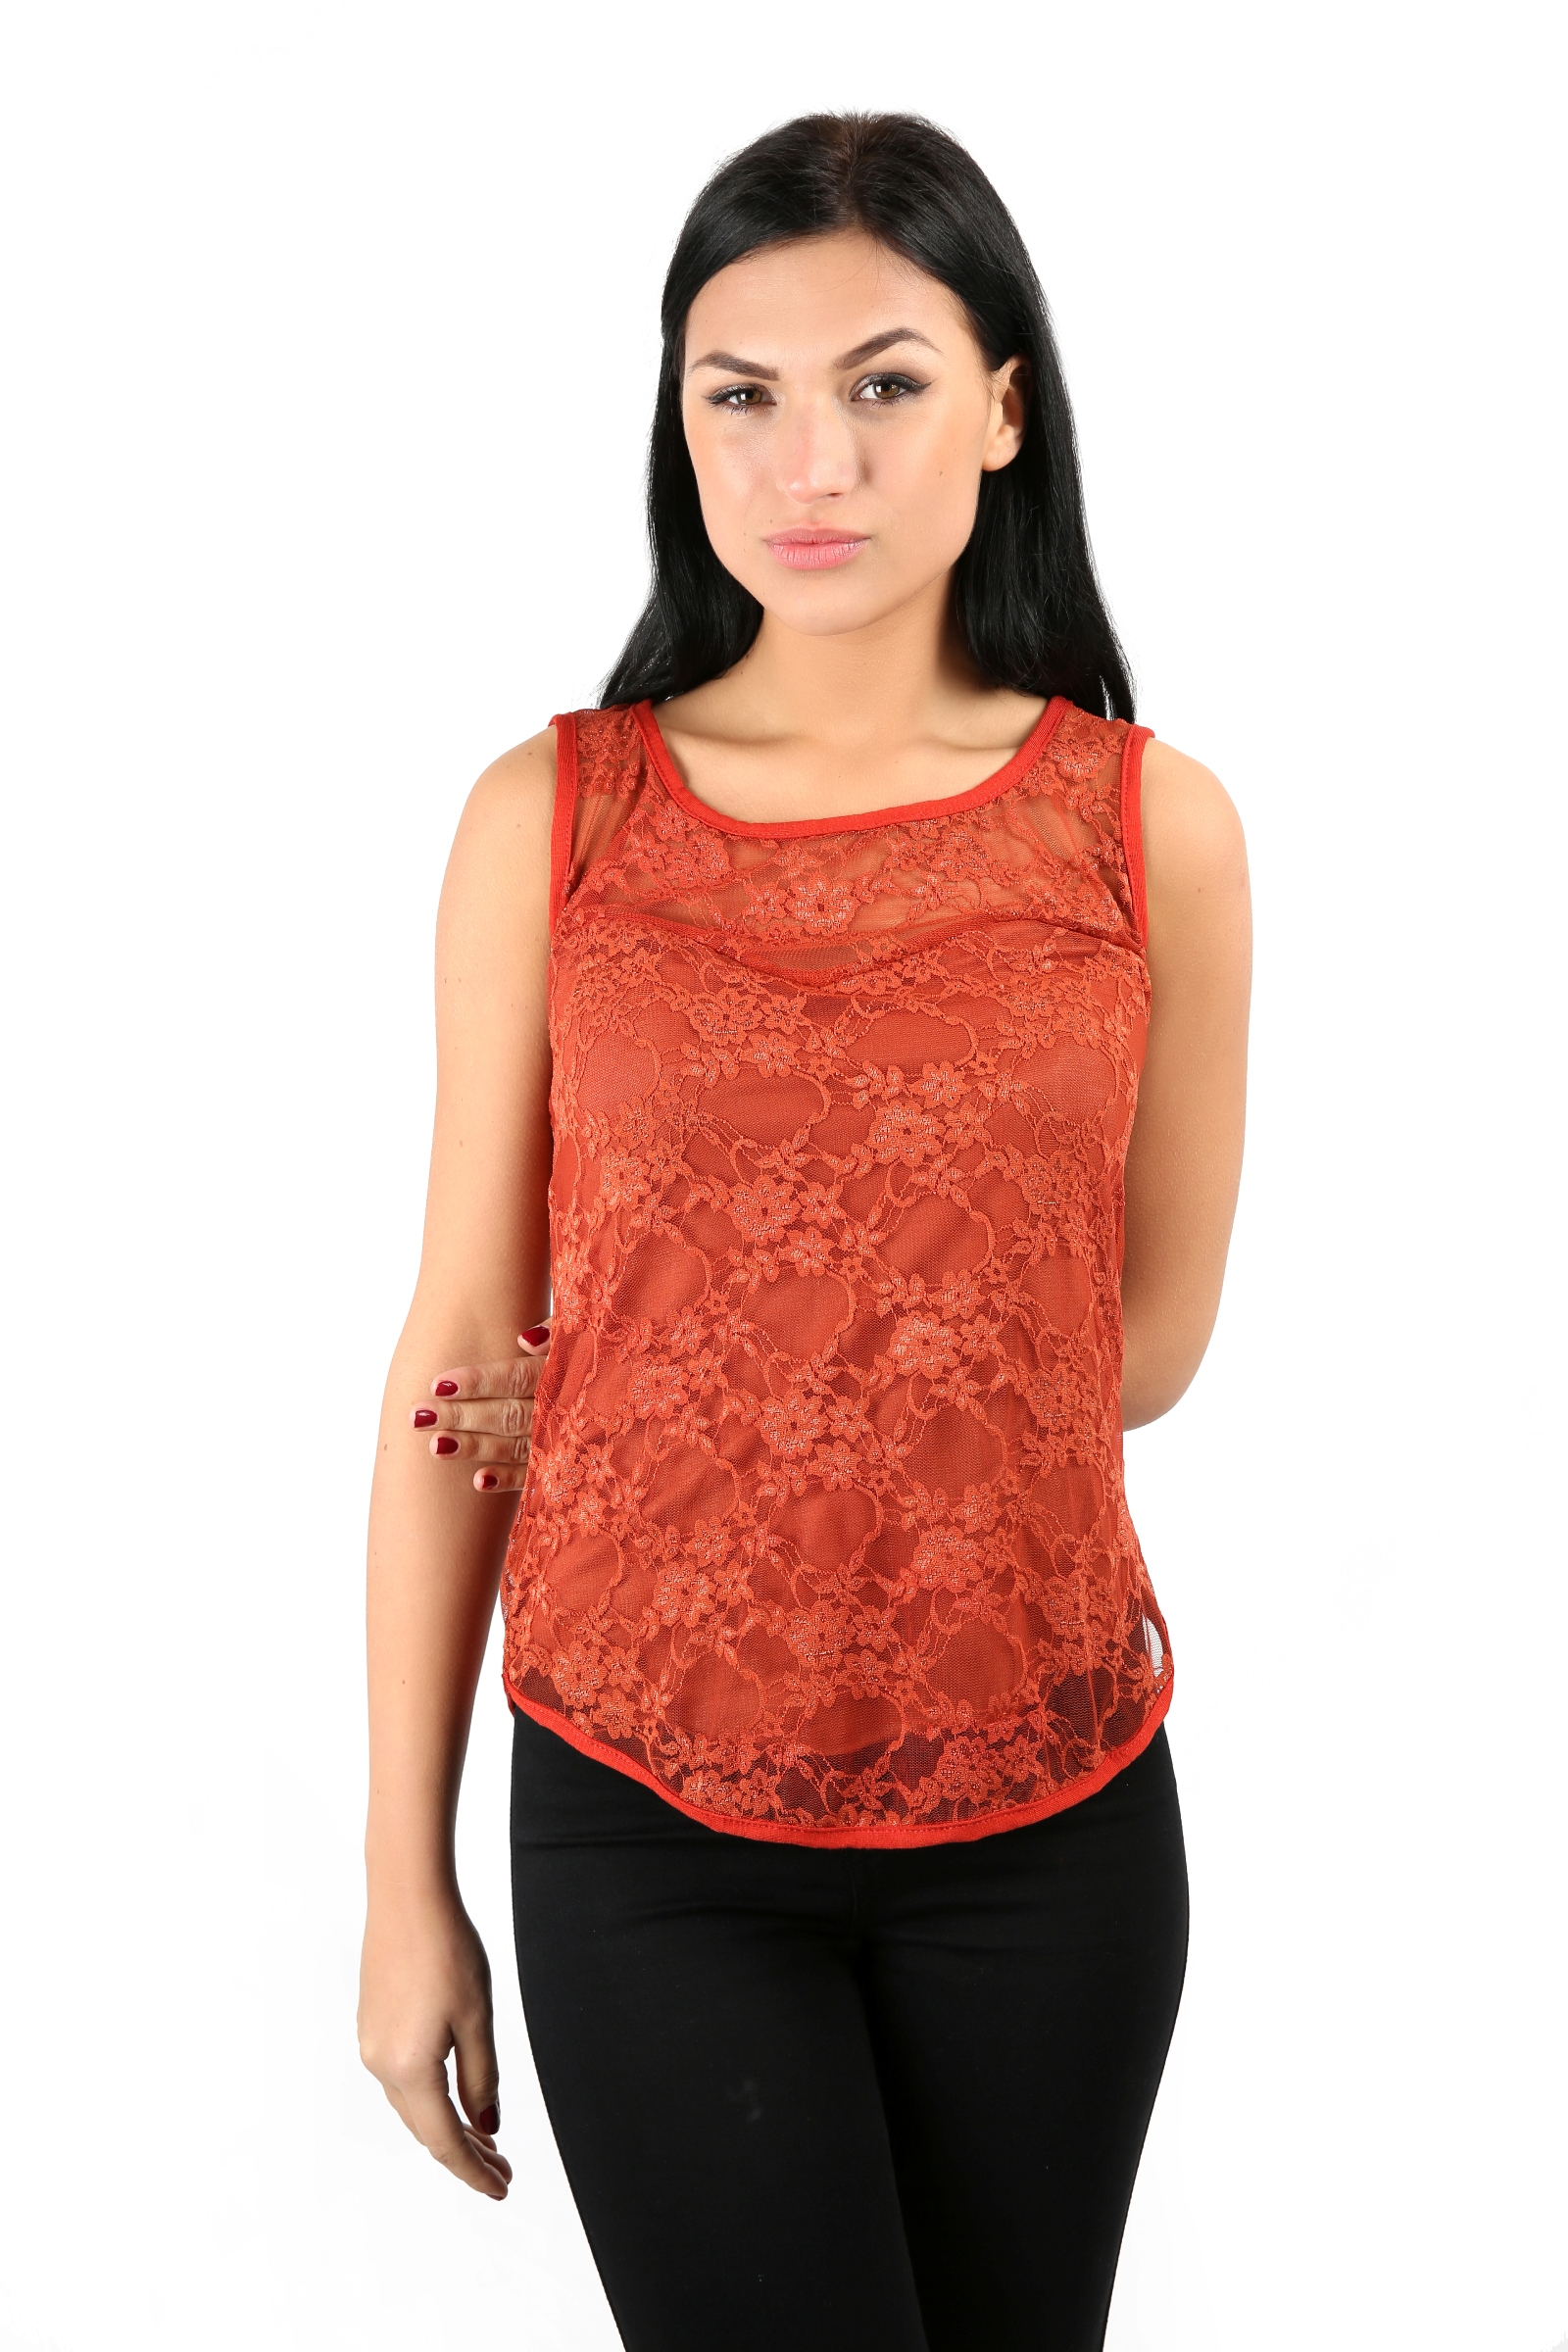 Ladies stretch bodycon sleeveless lace top womens t shirt for Sleeveless shirts for ladies